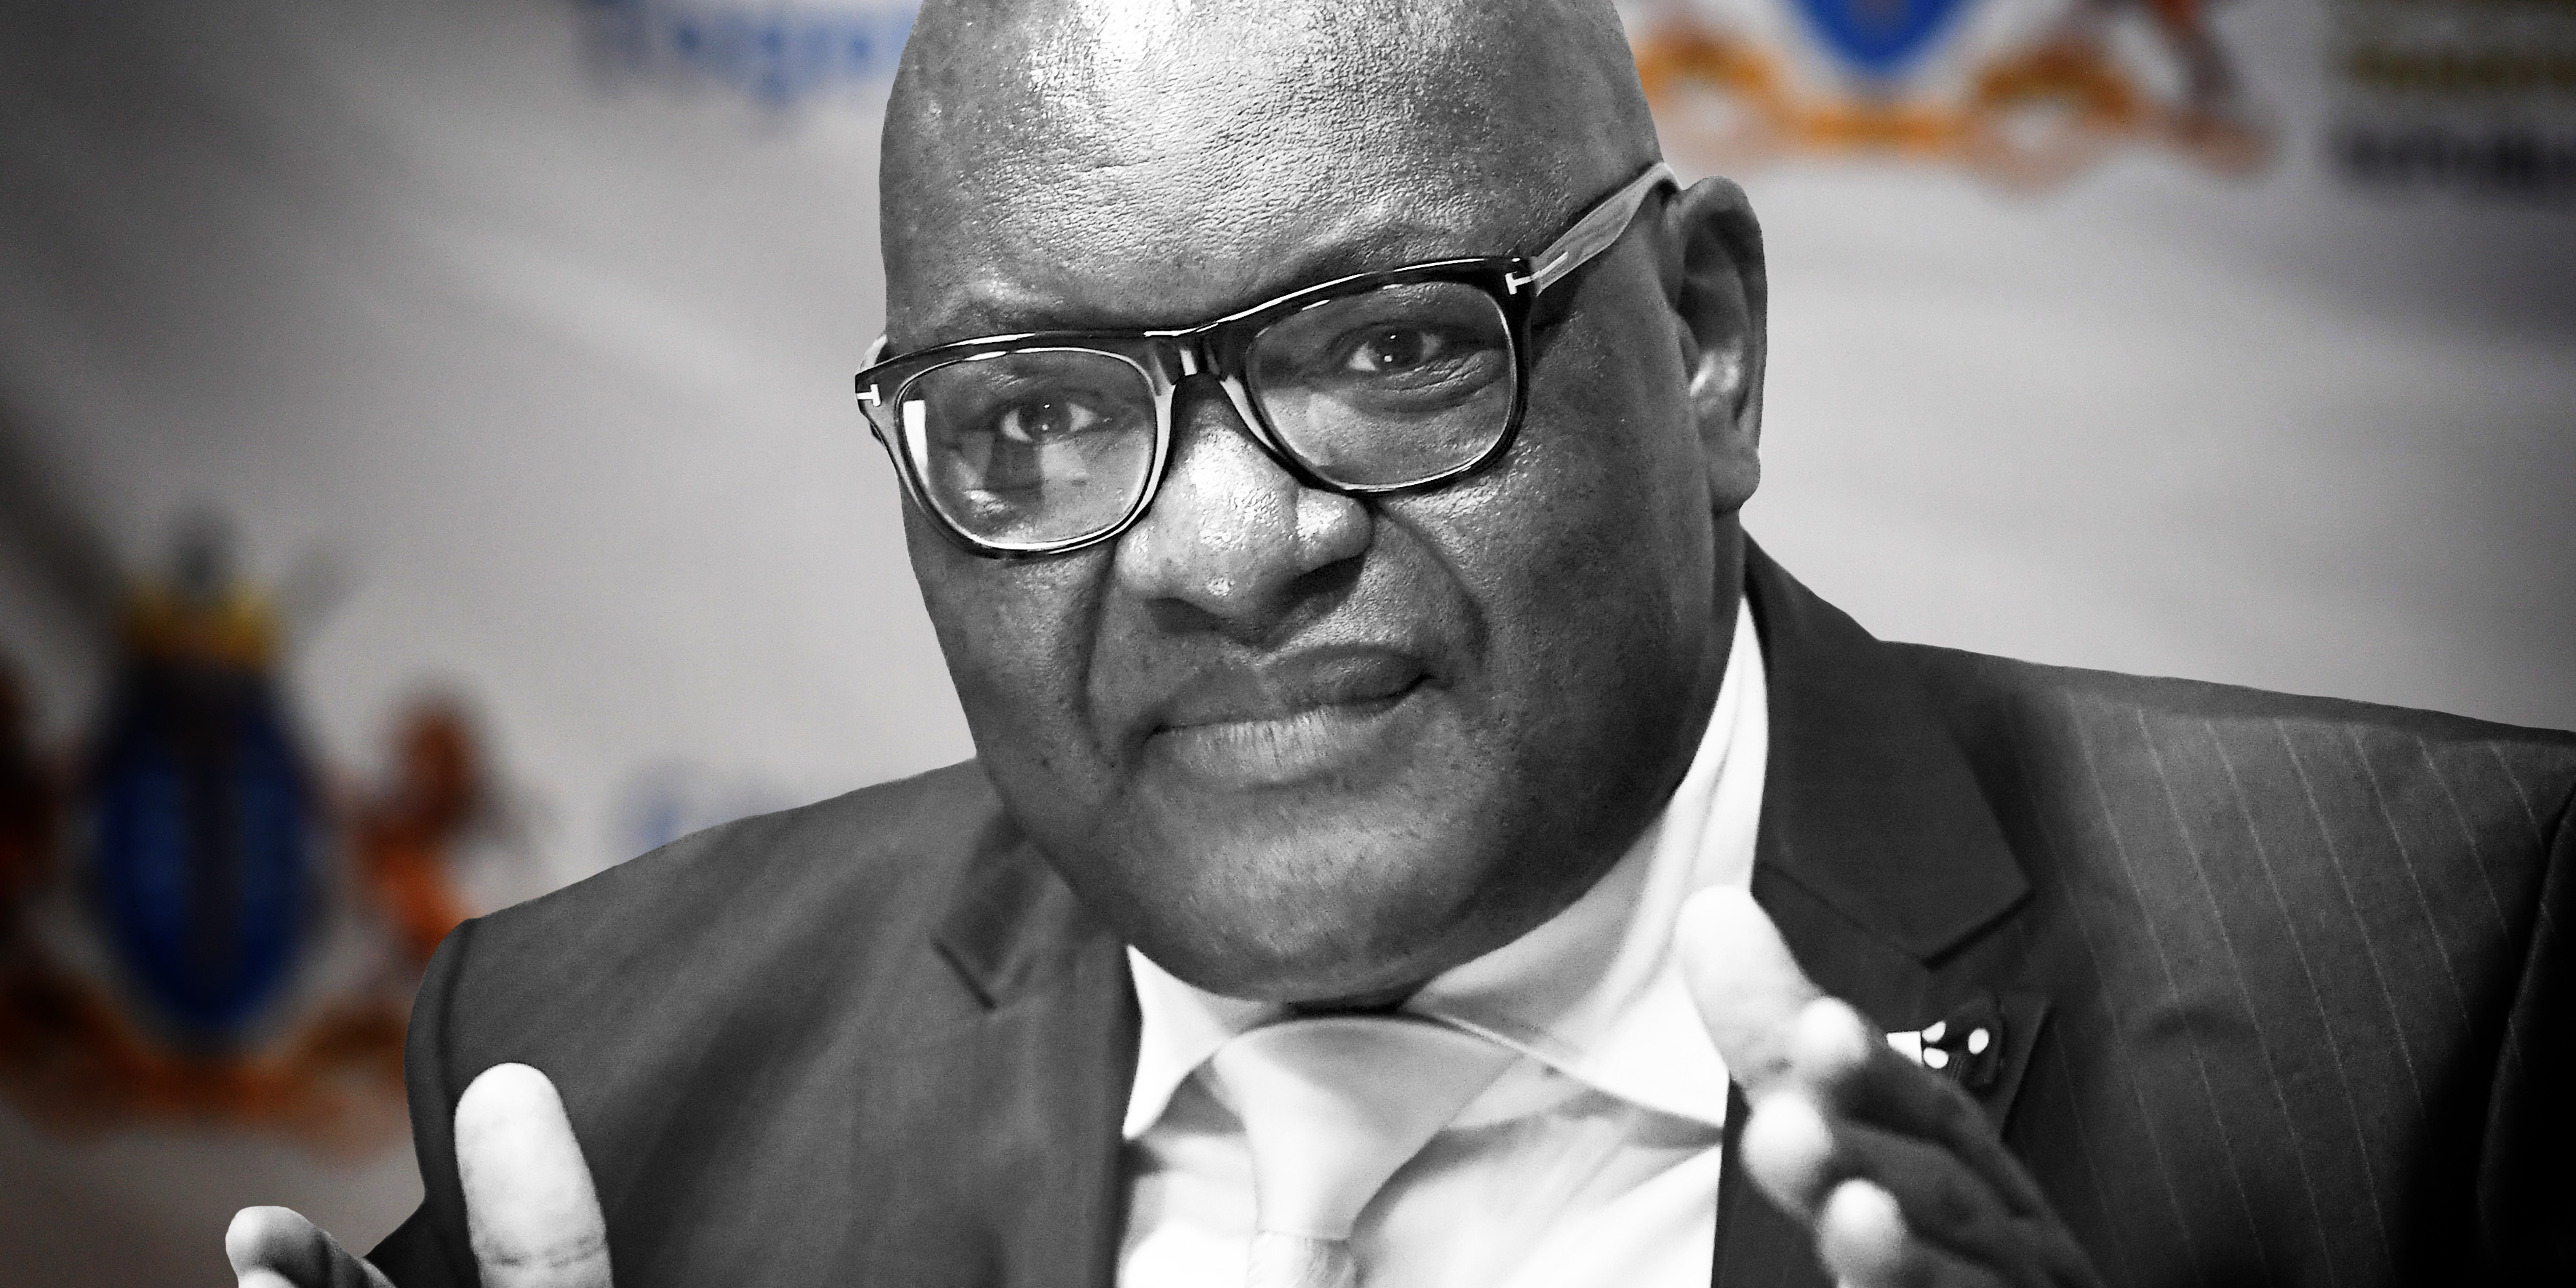 Makhura: State Security Agency will audit lifestyles of Gauteng executive to nail 'hyenas' - Daily Maverick